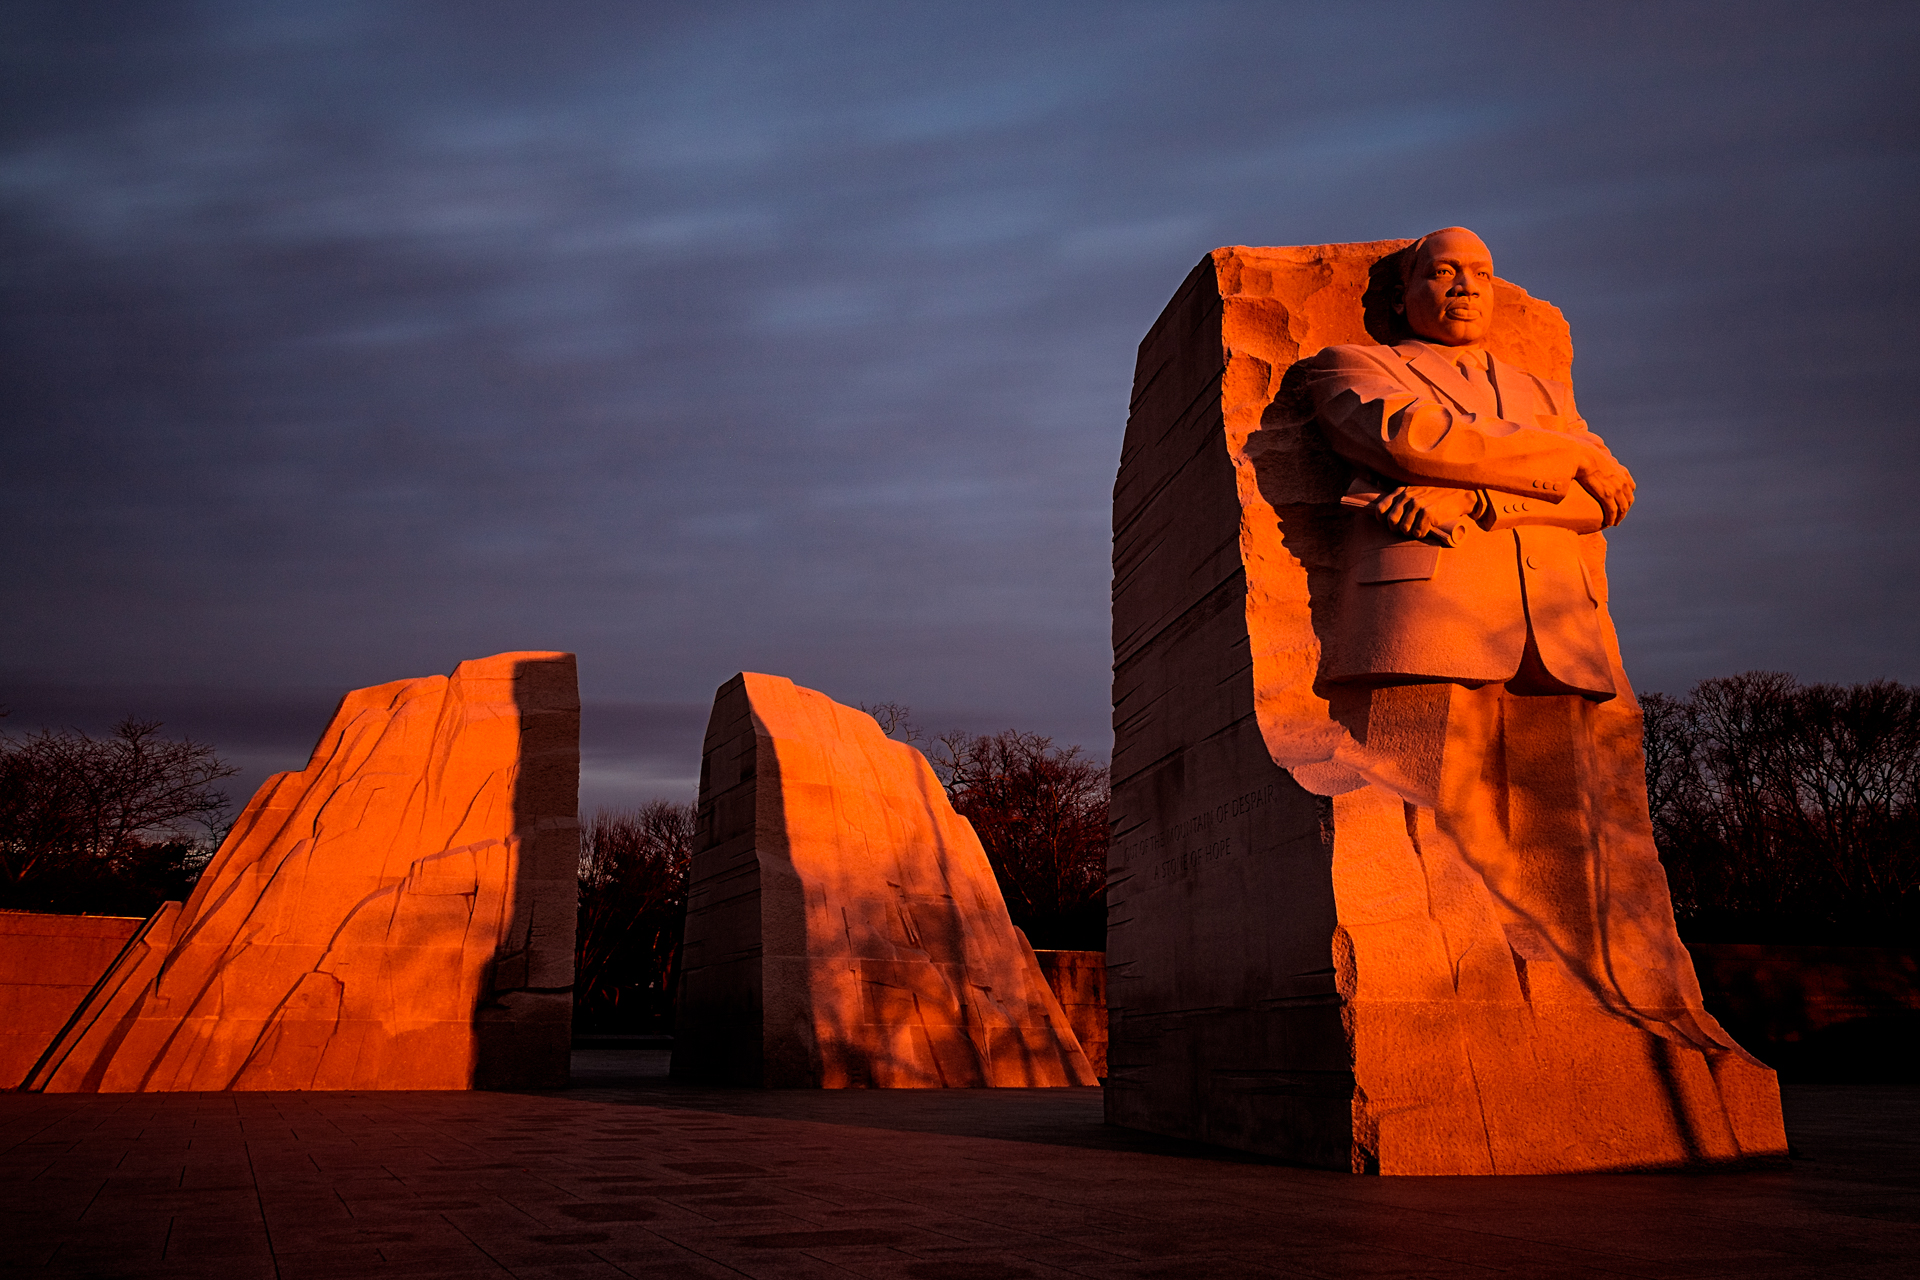 Awakening – A moody sunrise casts an orange glow at the MLK Memorial{&amp;nbsp;}(Image: Zack Lewkowicz)<p></p>